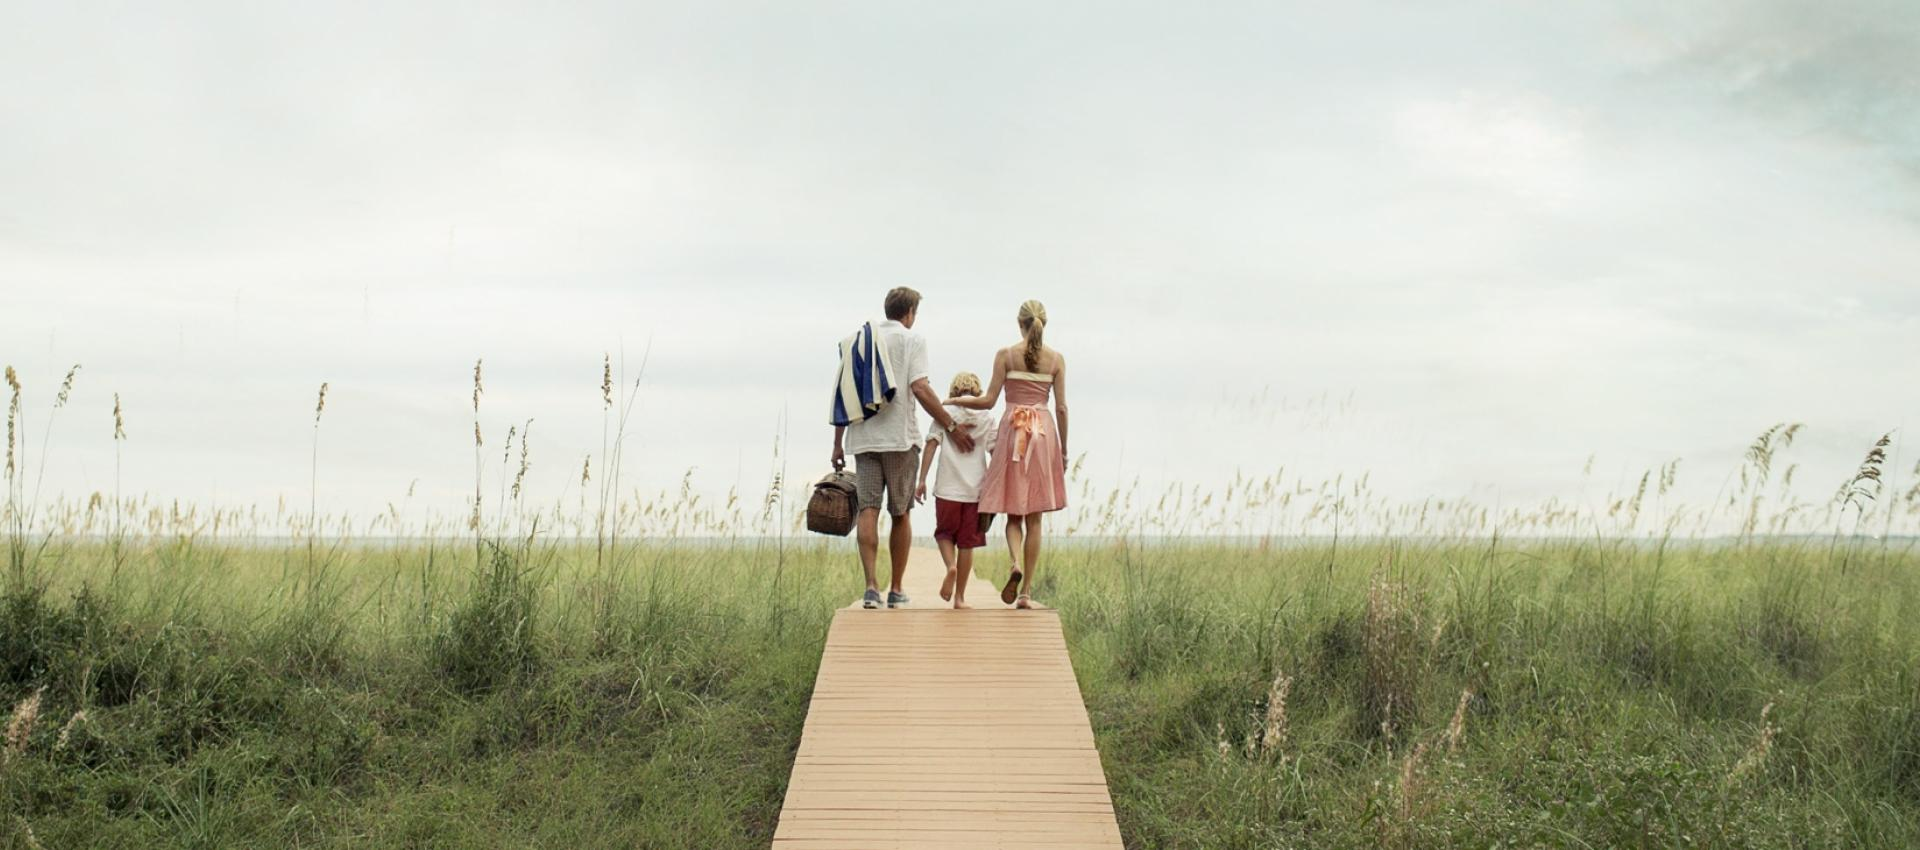 A family walking on the boardwalk towards the beach